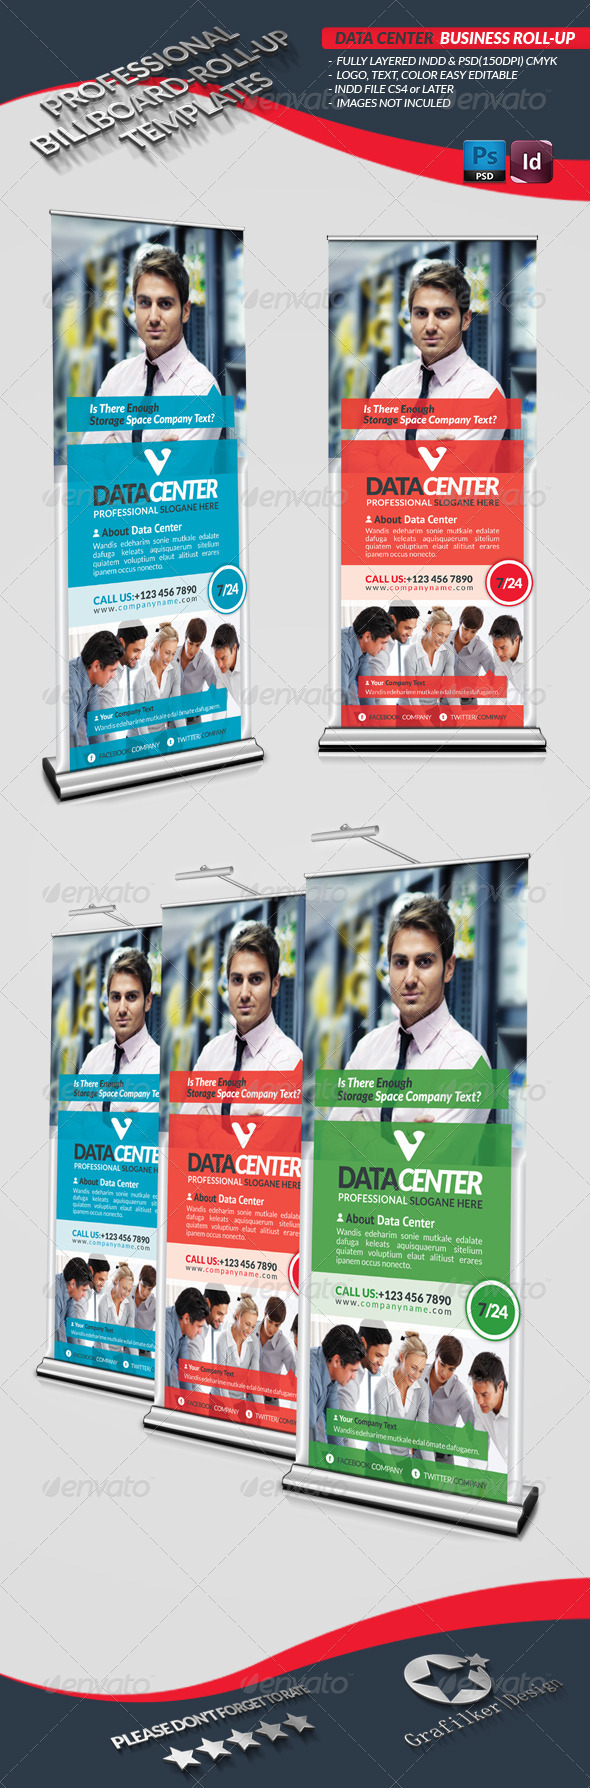 GraphicRiver Data Center Business Roll-Up 3677840